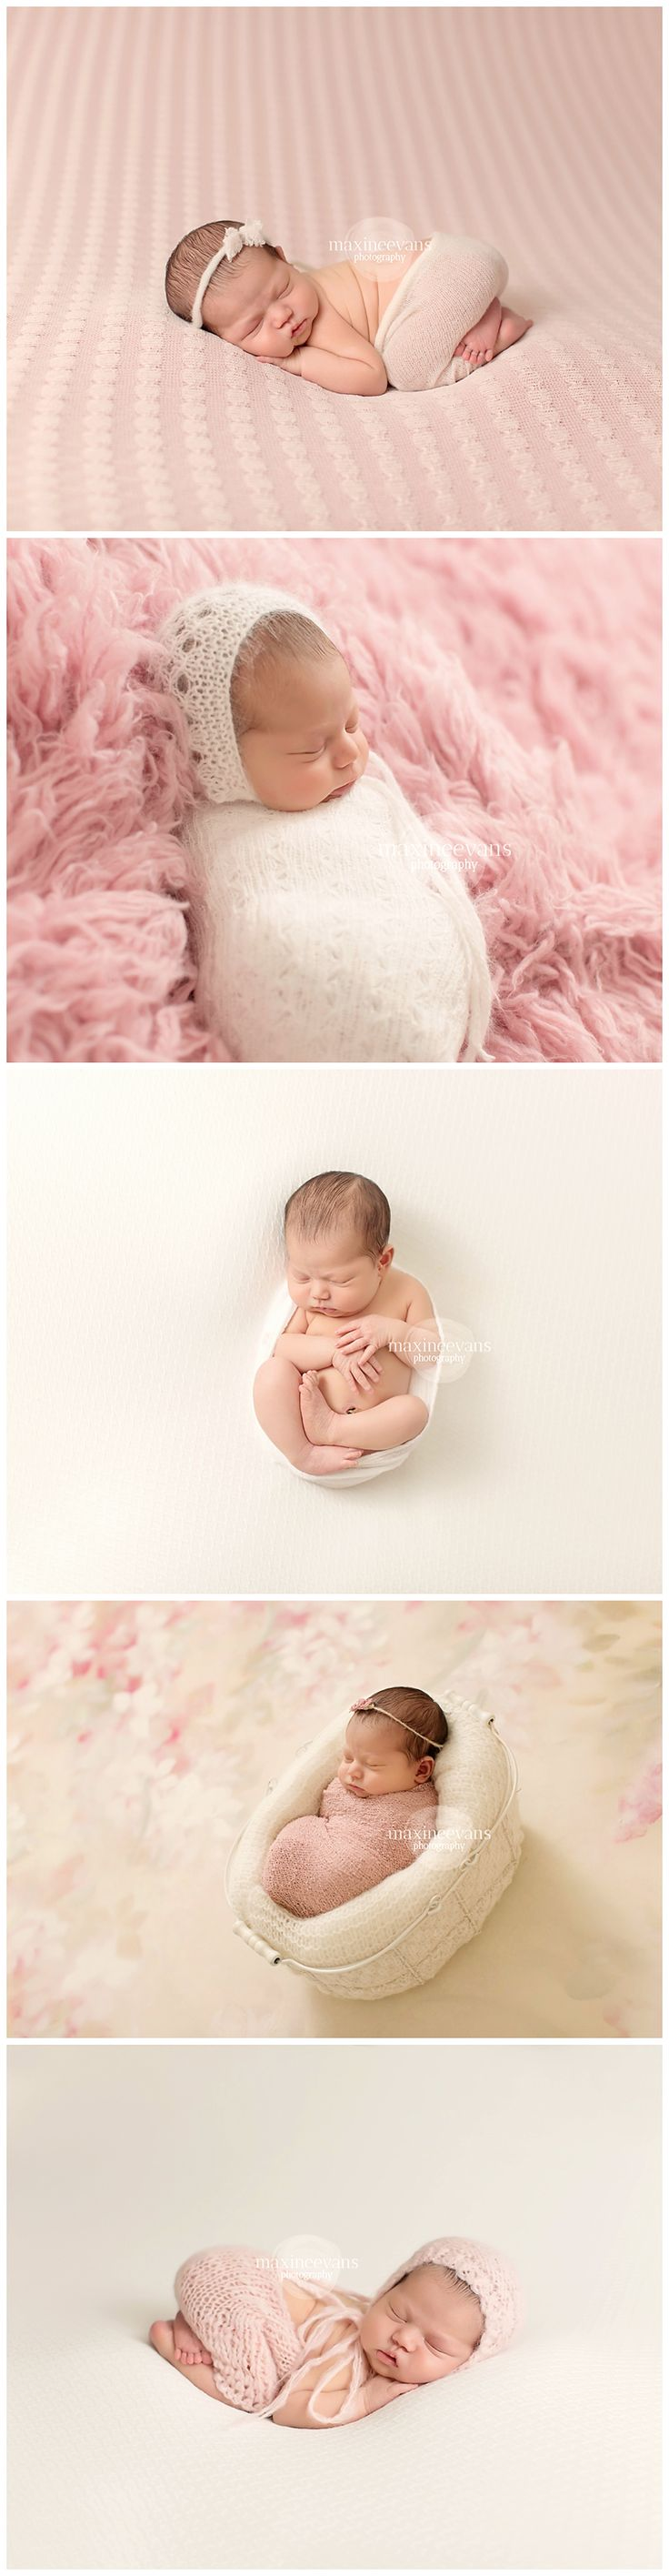 Newborn Photography Brentwood, Los Angeles - Los Angeles Newborn Baby Photography - Maxine Evans Photography